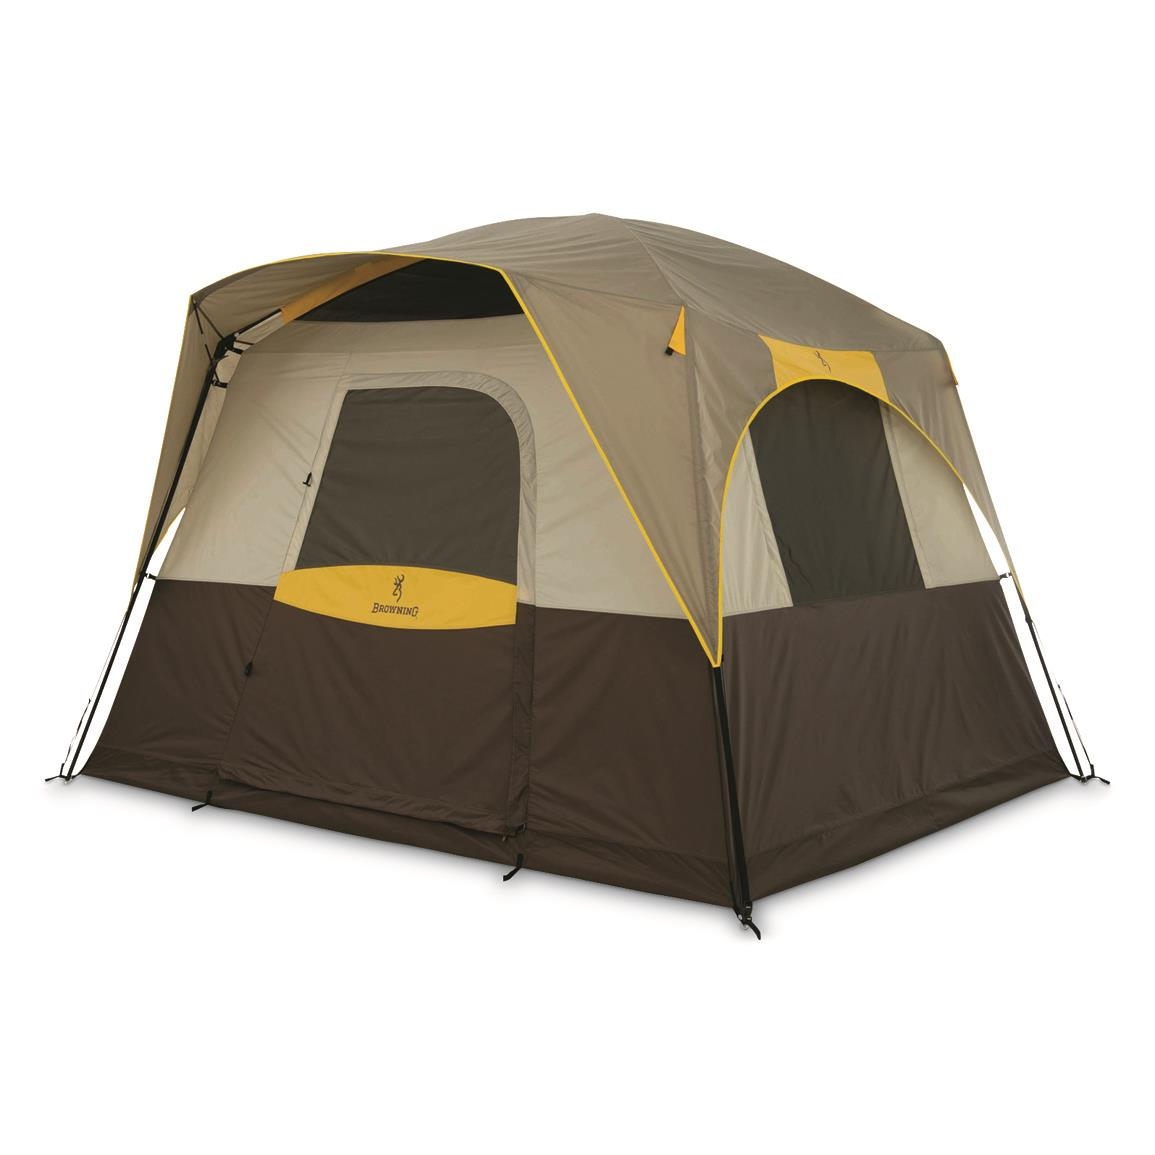 Browning Big Horn 5-person Tent